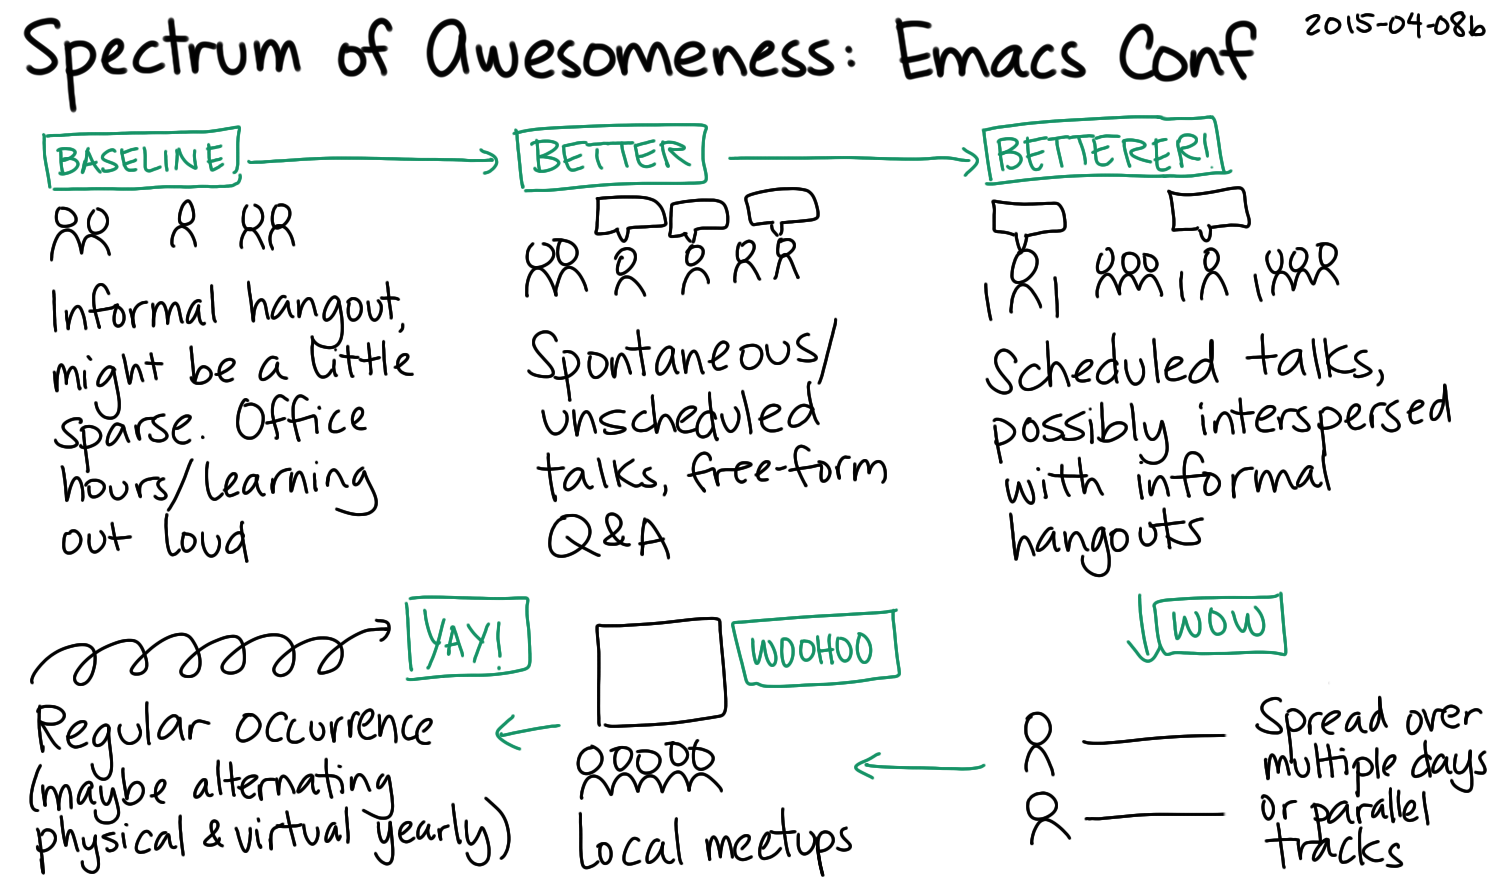 2015-04-08b Spectrum of Awesomeness - Emacs Conference -- index card #emacs #emacsconf #spectrum.png